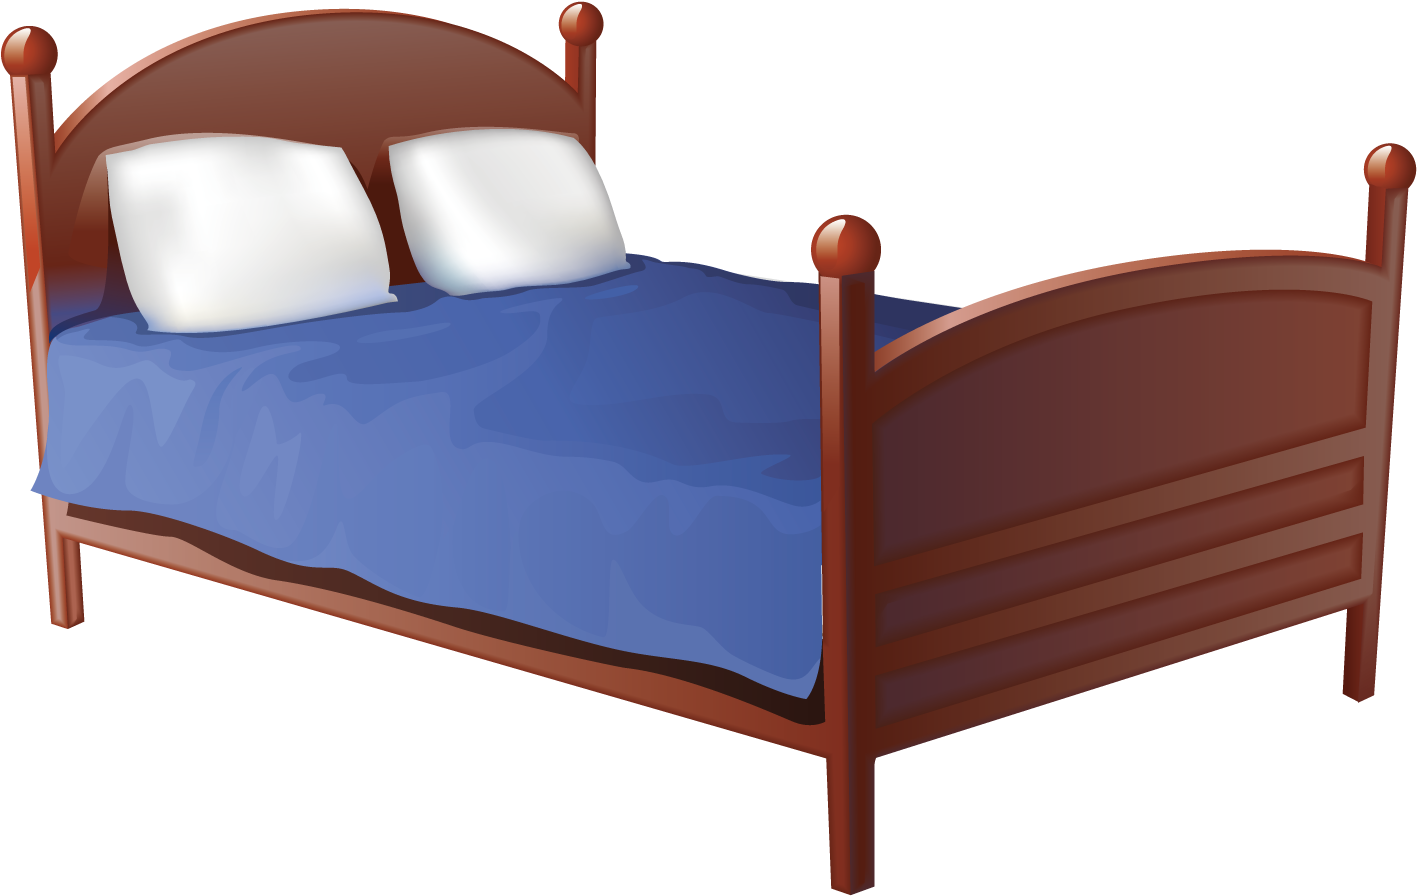 Download Bed Frame Old Fashioned Wooden Bed Frame Sizes In Garden Paw Patrol 5 Little Monkeys Jumping Png Image With No Background Pngkey Com